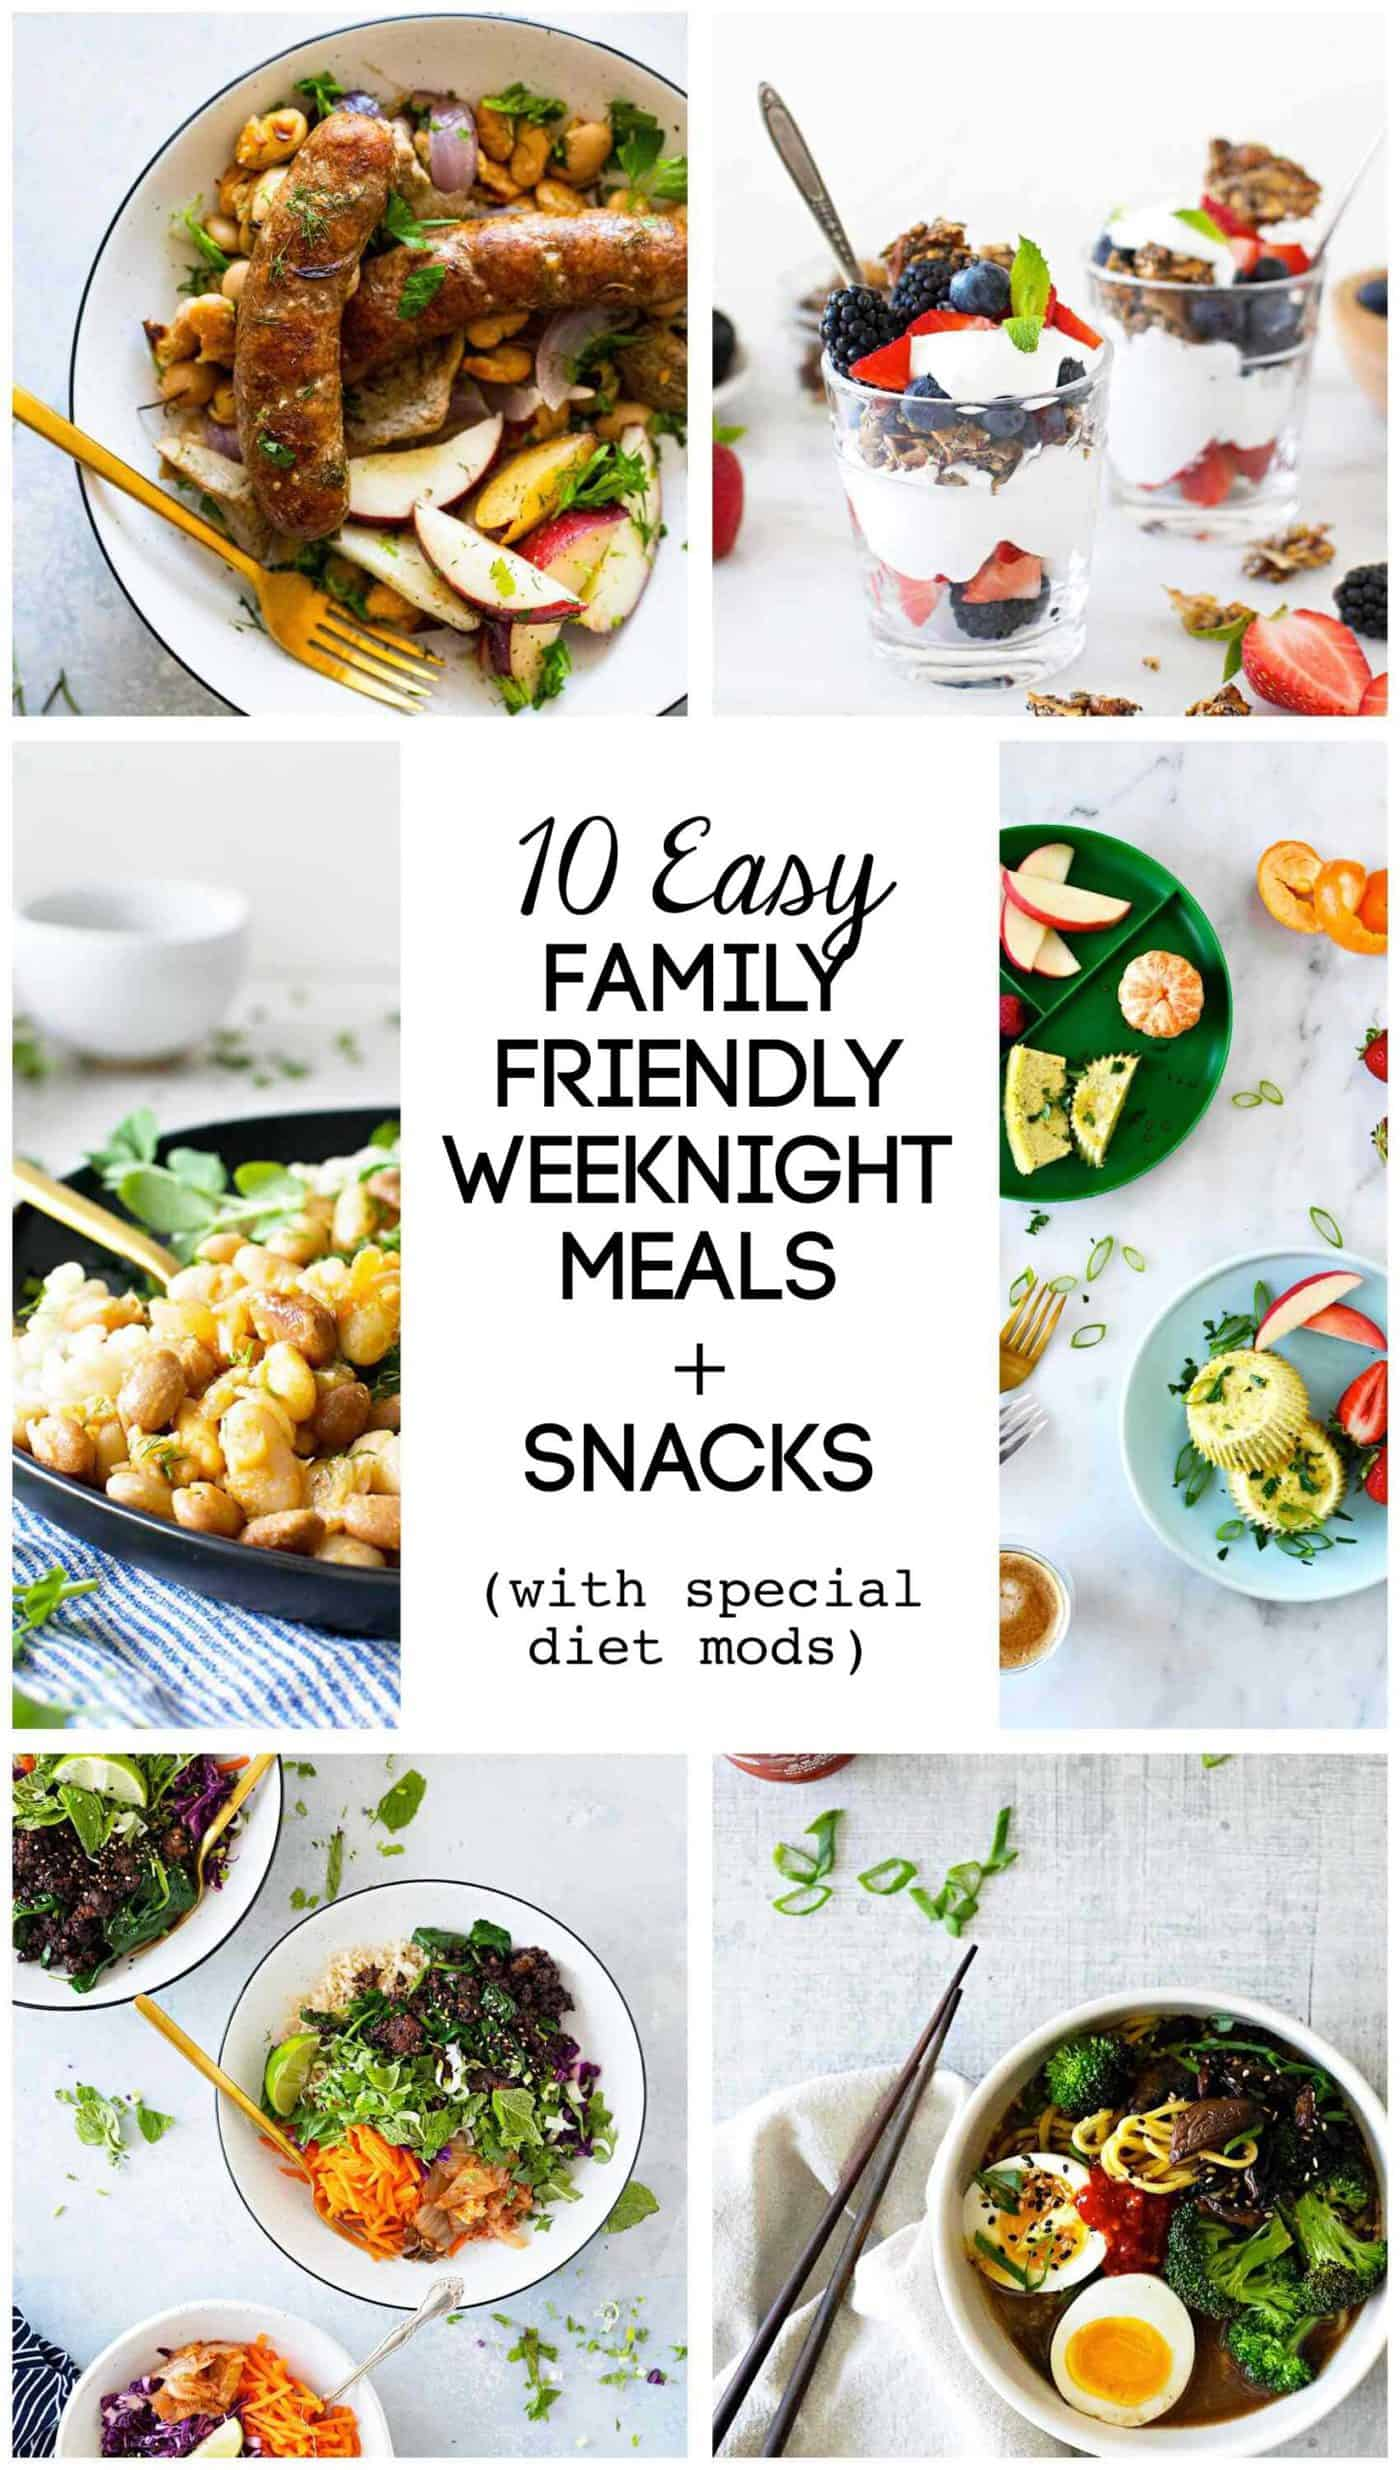 Dinner Inspo: Easy Weeknight Family Friendly Recipes via thepigandquill.com